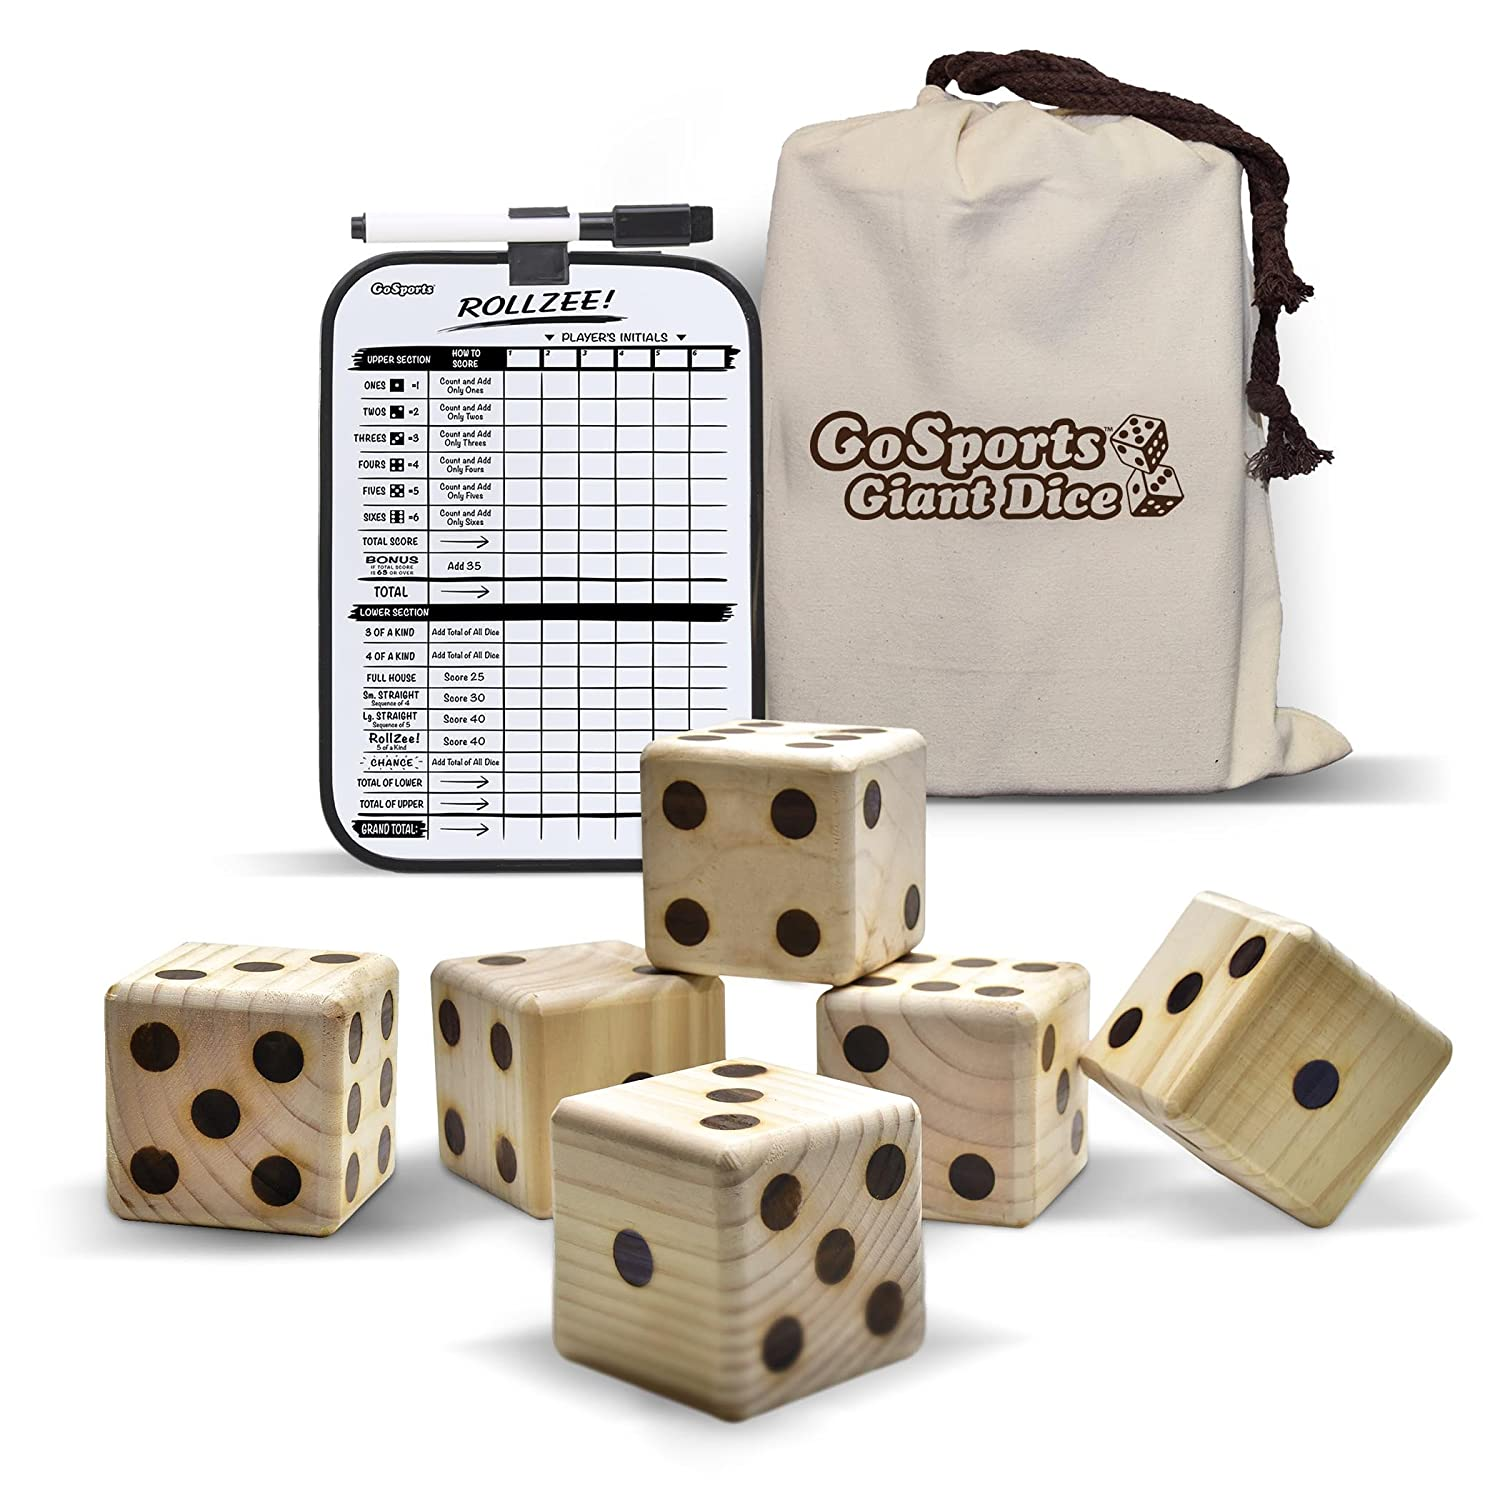 GoSports Giant Wooden Playing Dice Set for Jumbo Size Fun (Includes 6 Dice and Canvas Carrying Bag) GD-6-01